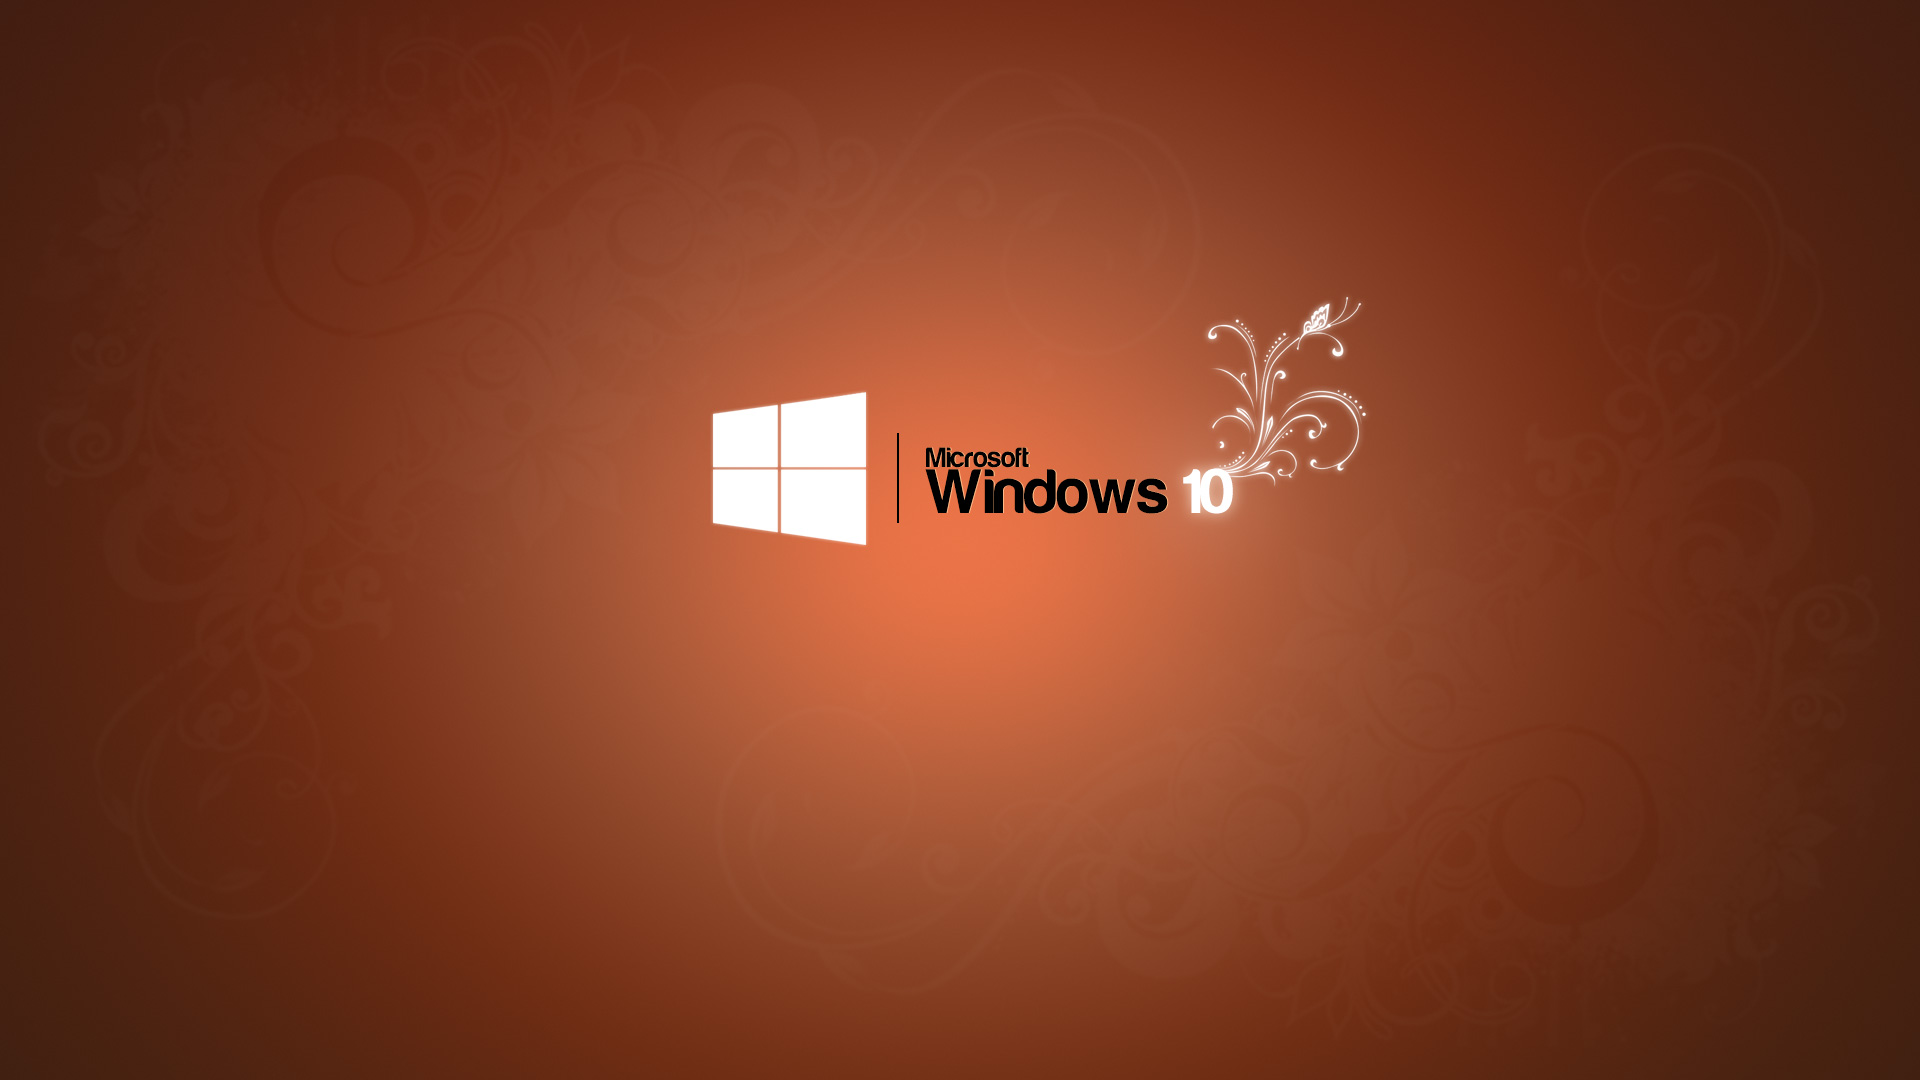 Windows-10-1920x1080-WallpapersHunt.com-